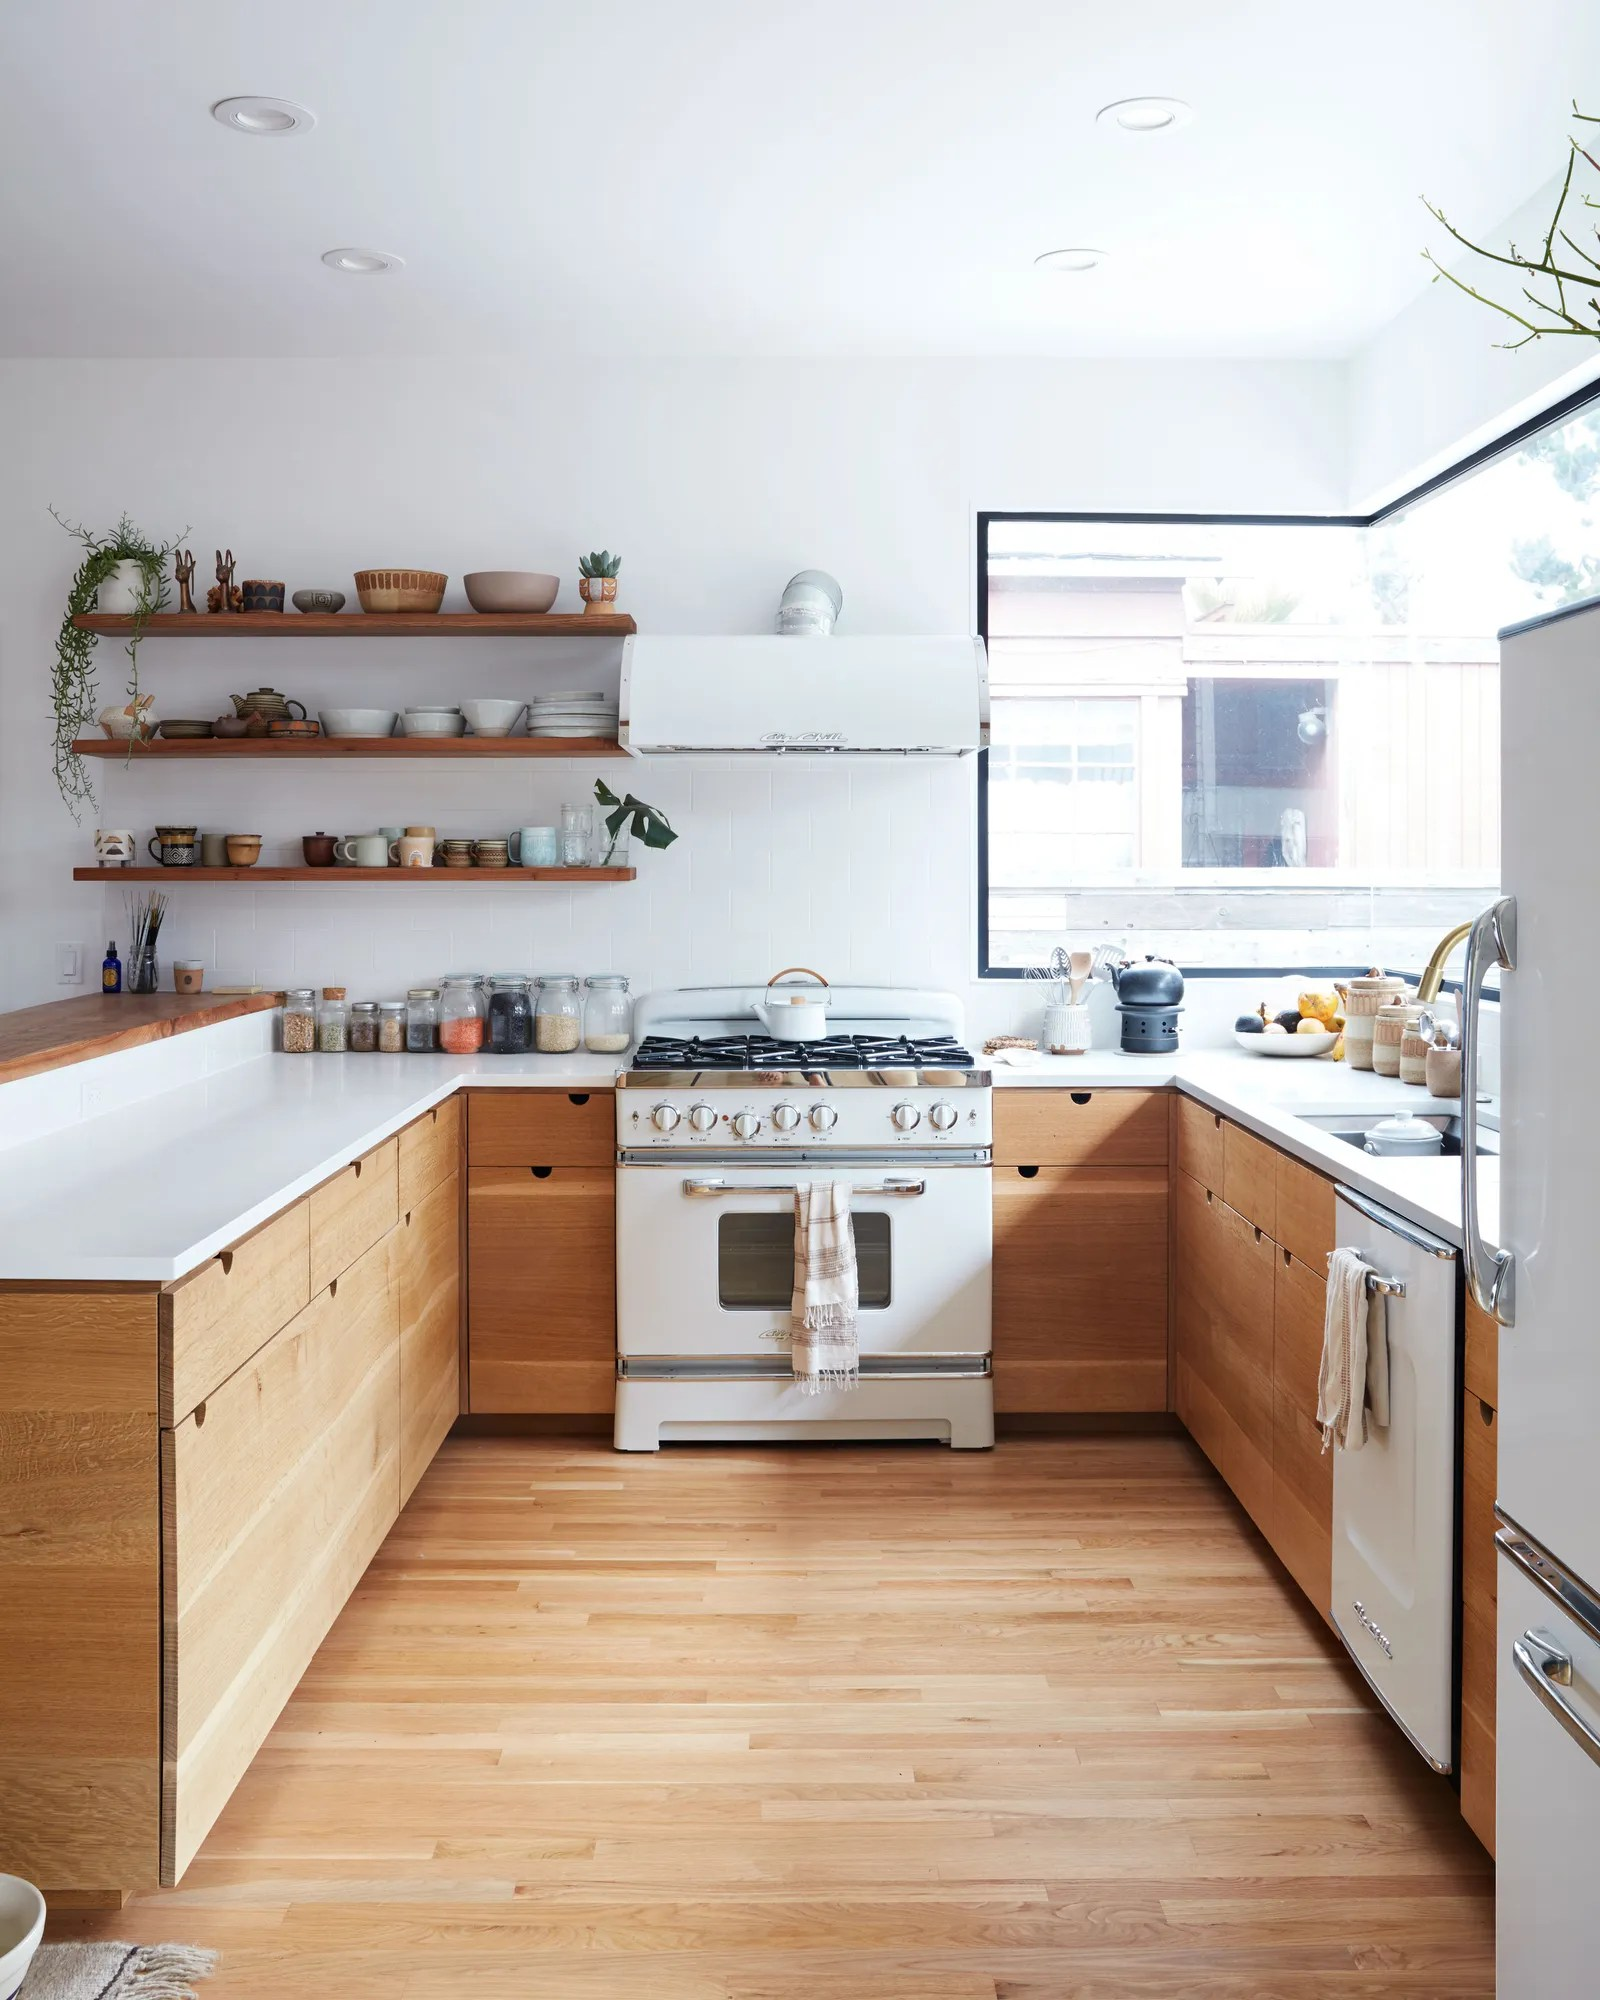 Countertop Cooking Appliances The Secret To Making White Kitchen Appliances Look Chic